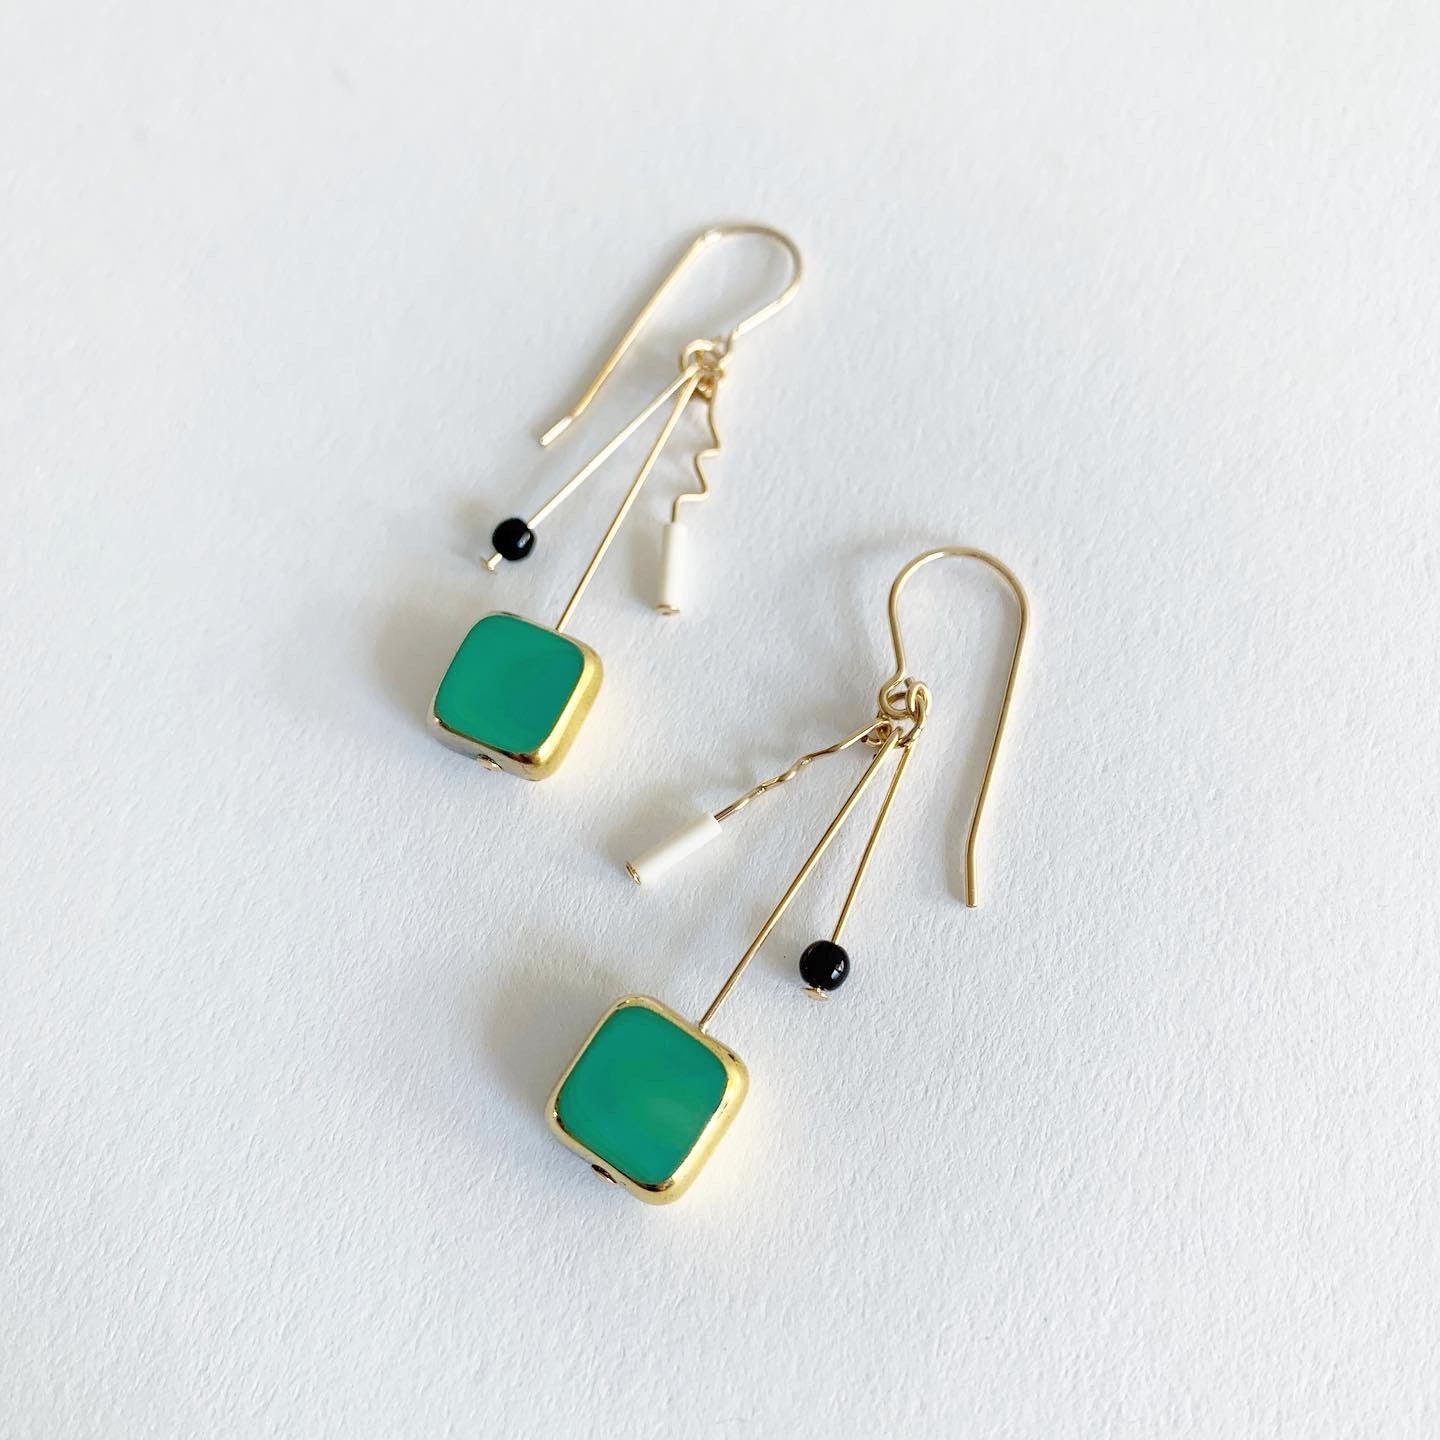 Ronni Kappos Green Squiggle Earrings